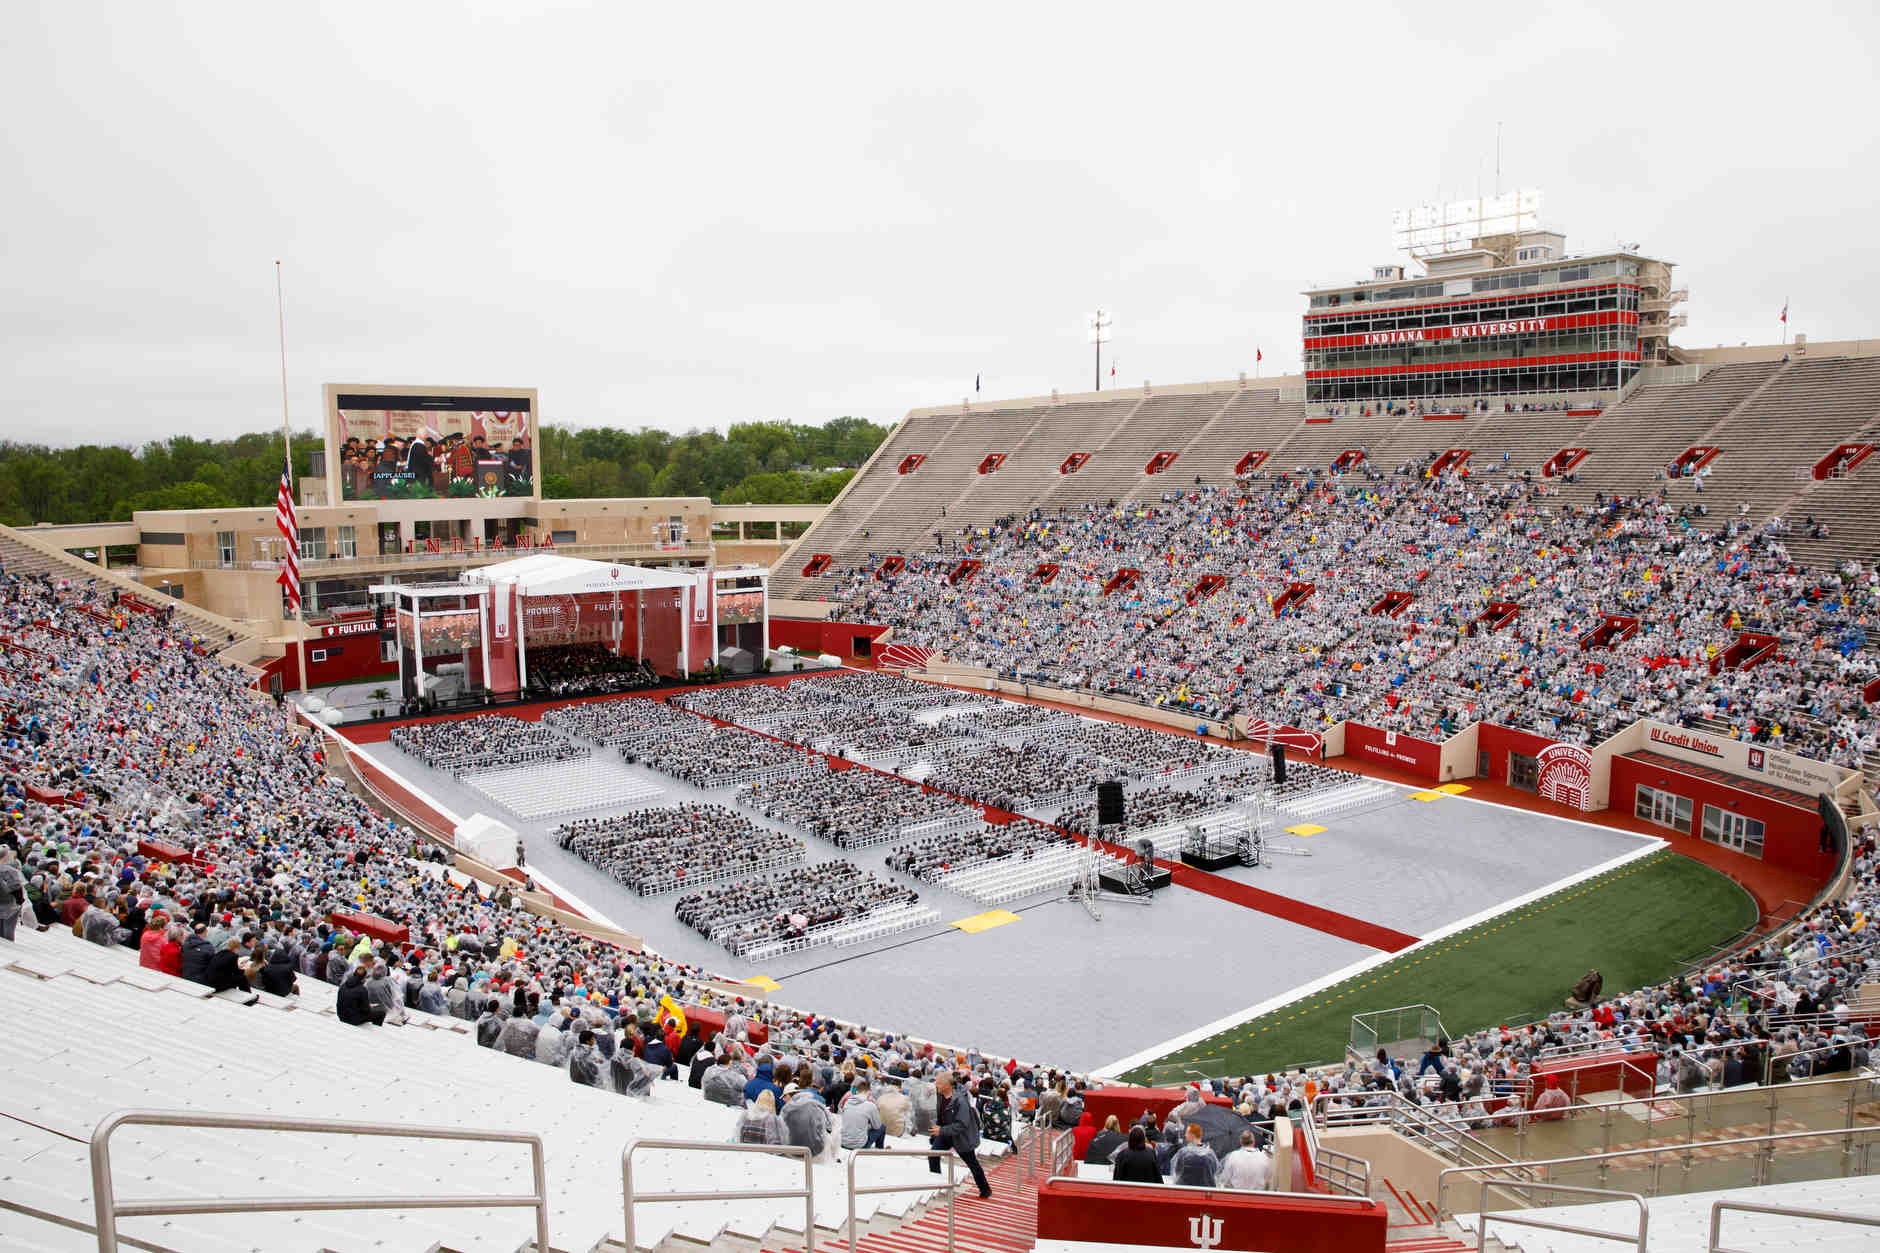 The 199th Indiana University Bloomington Undergraduate Commencement is pictured at Memorial Stadium on Saturday, May 4, 2019. (James Brosher/Indiana University)